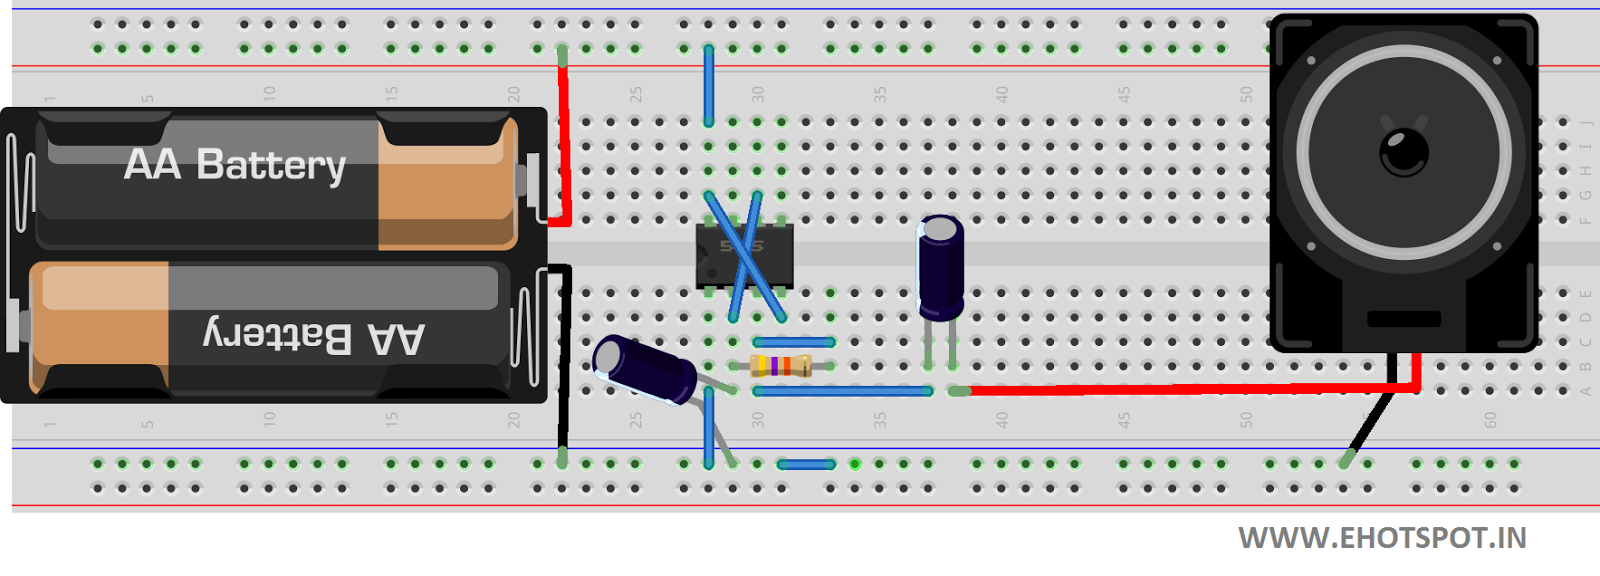 Ticking Bomb Sound Circuit Using 555 Ic Electronics Hotspot Projectsonelectricalengineering Quiz Project 9leave Pin 57 As There Is No Use Of Them In This 10turn On Power To And Enjoy The Effect